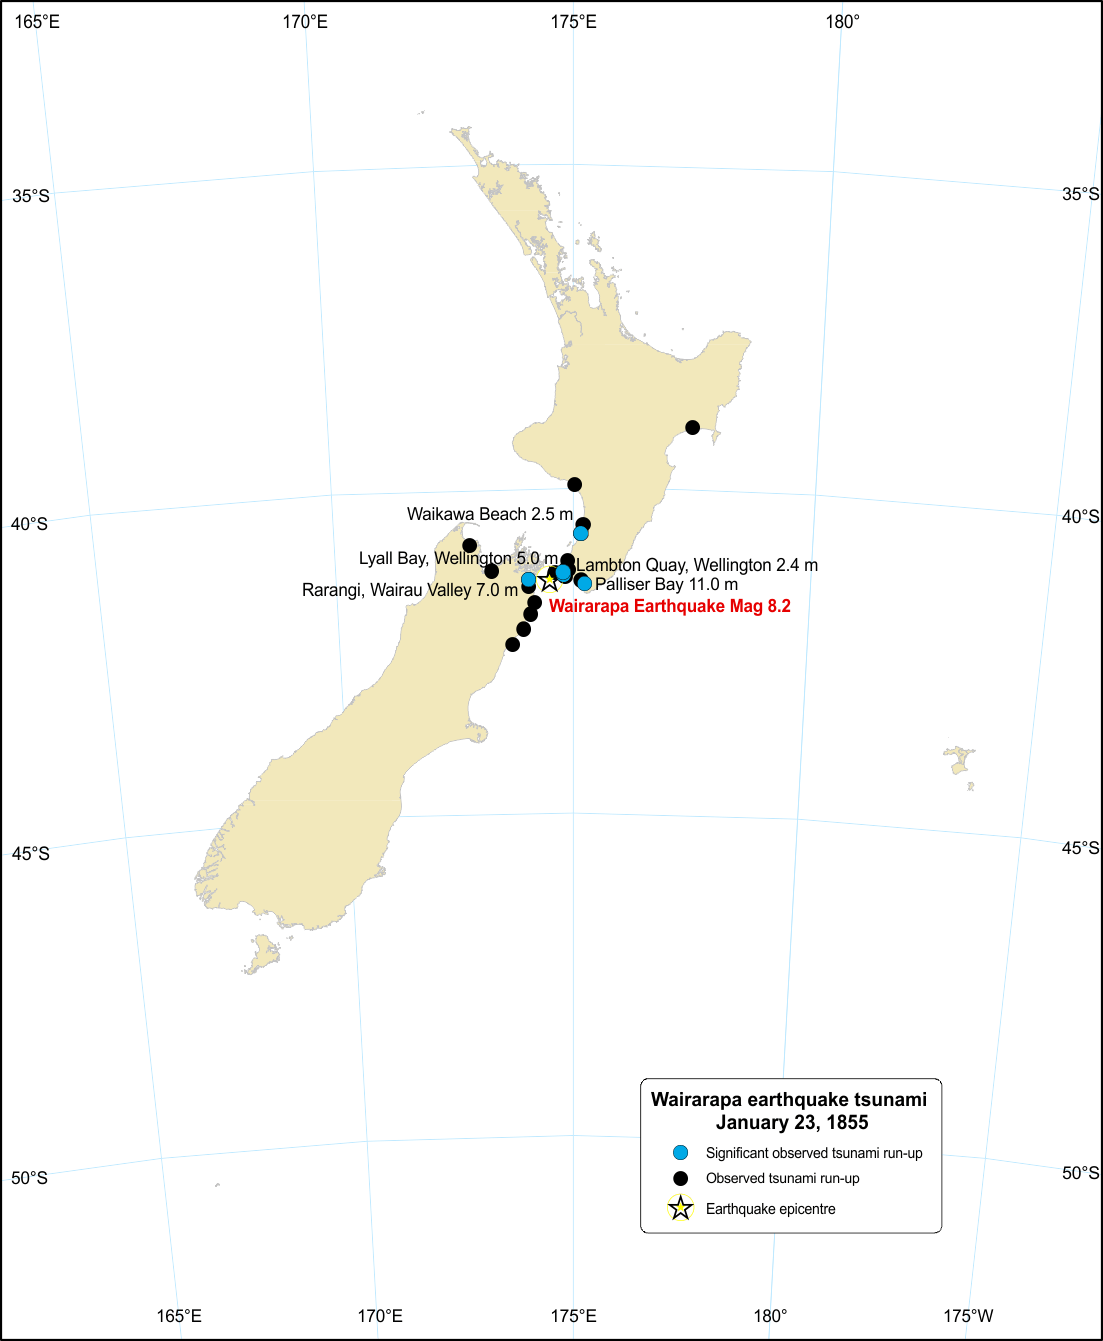 Run-up for Wairarapa earthquake tsunami.